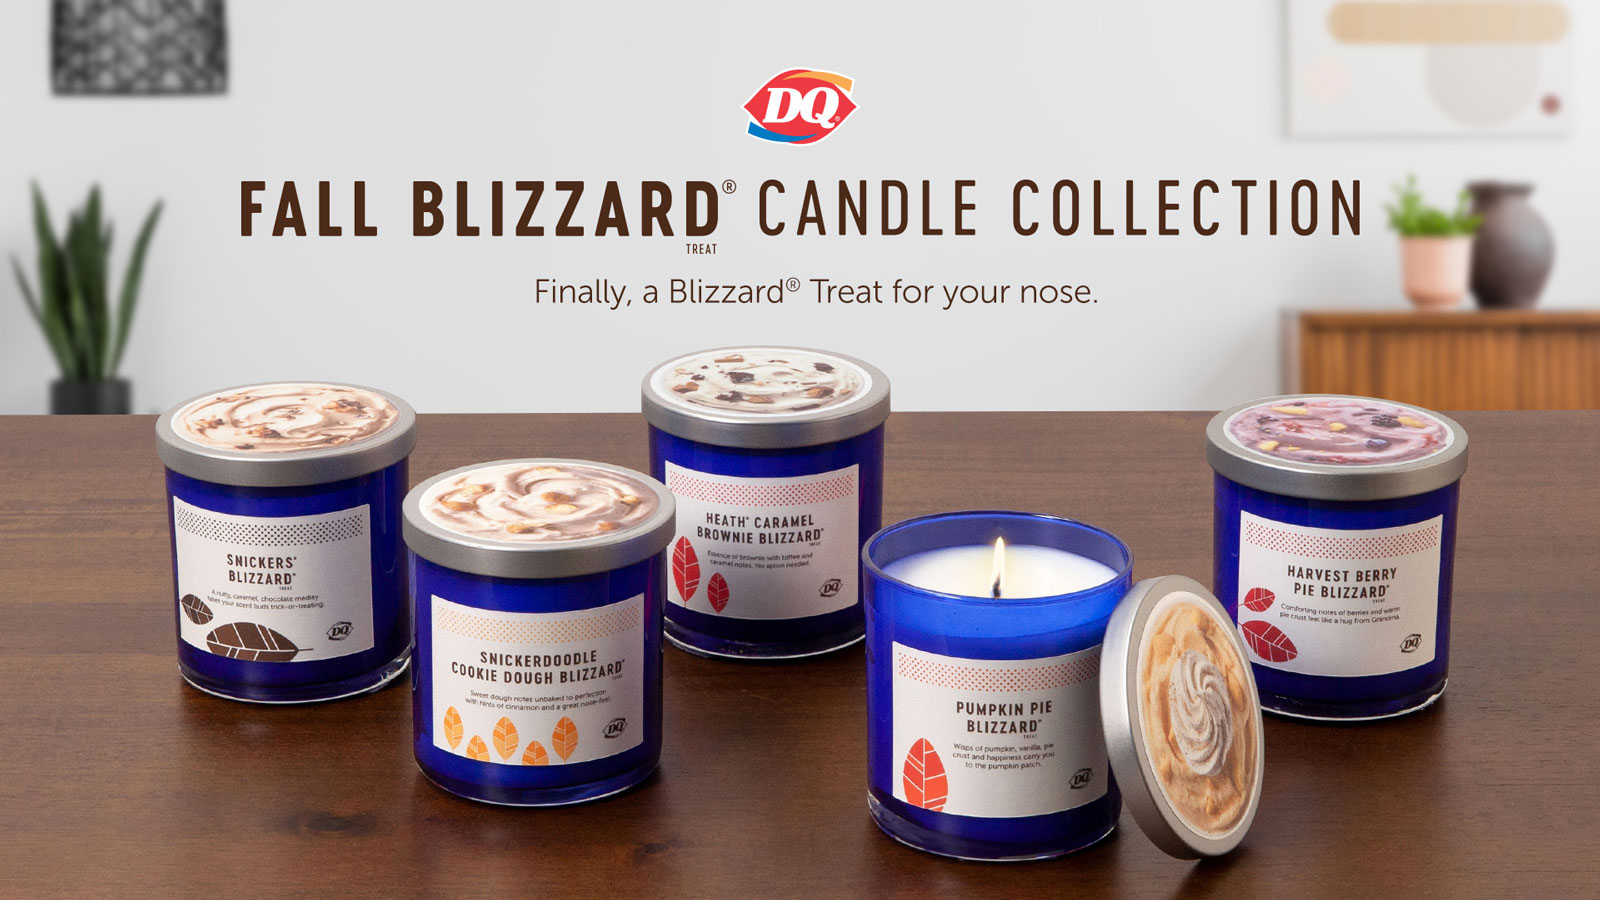 dq-blizzard-candles-horiz-XL-BLOG0819.jpg